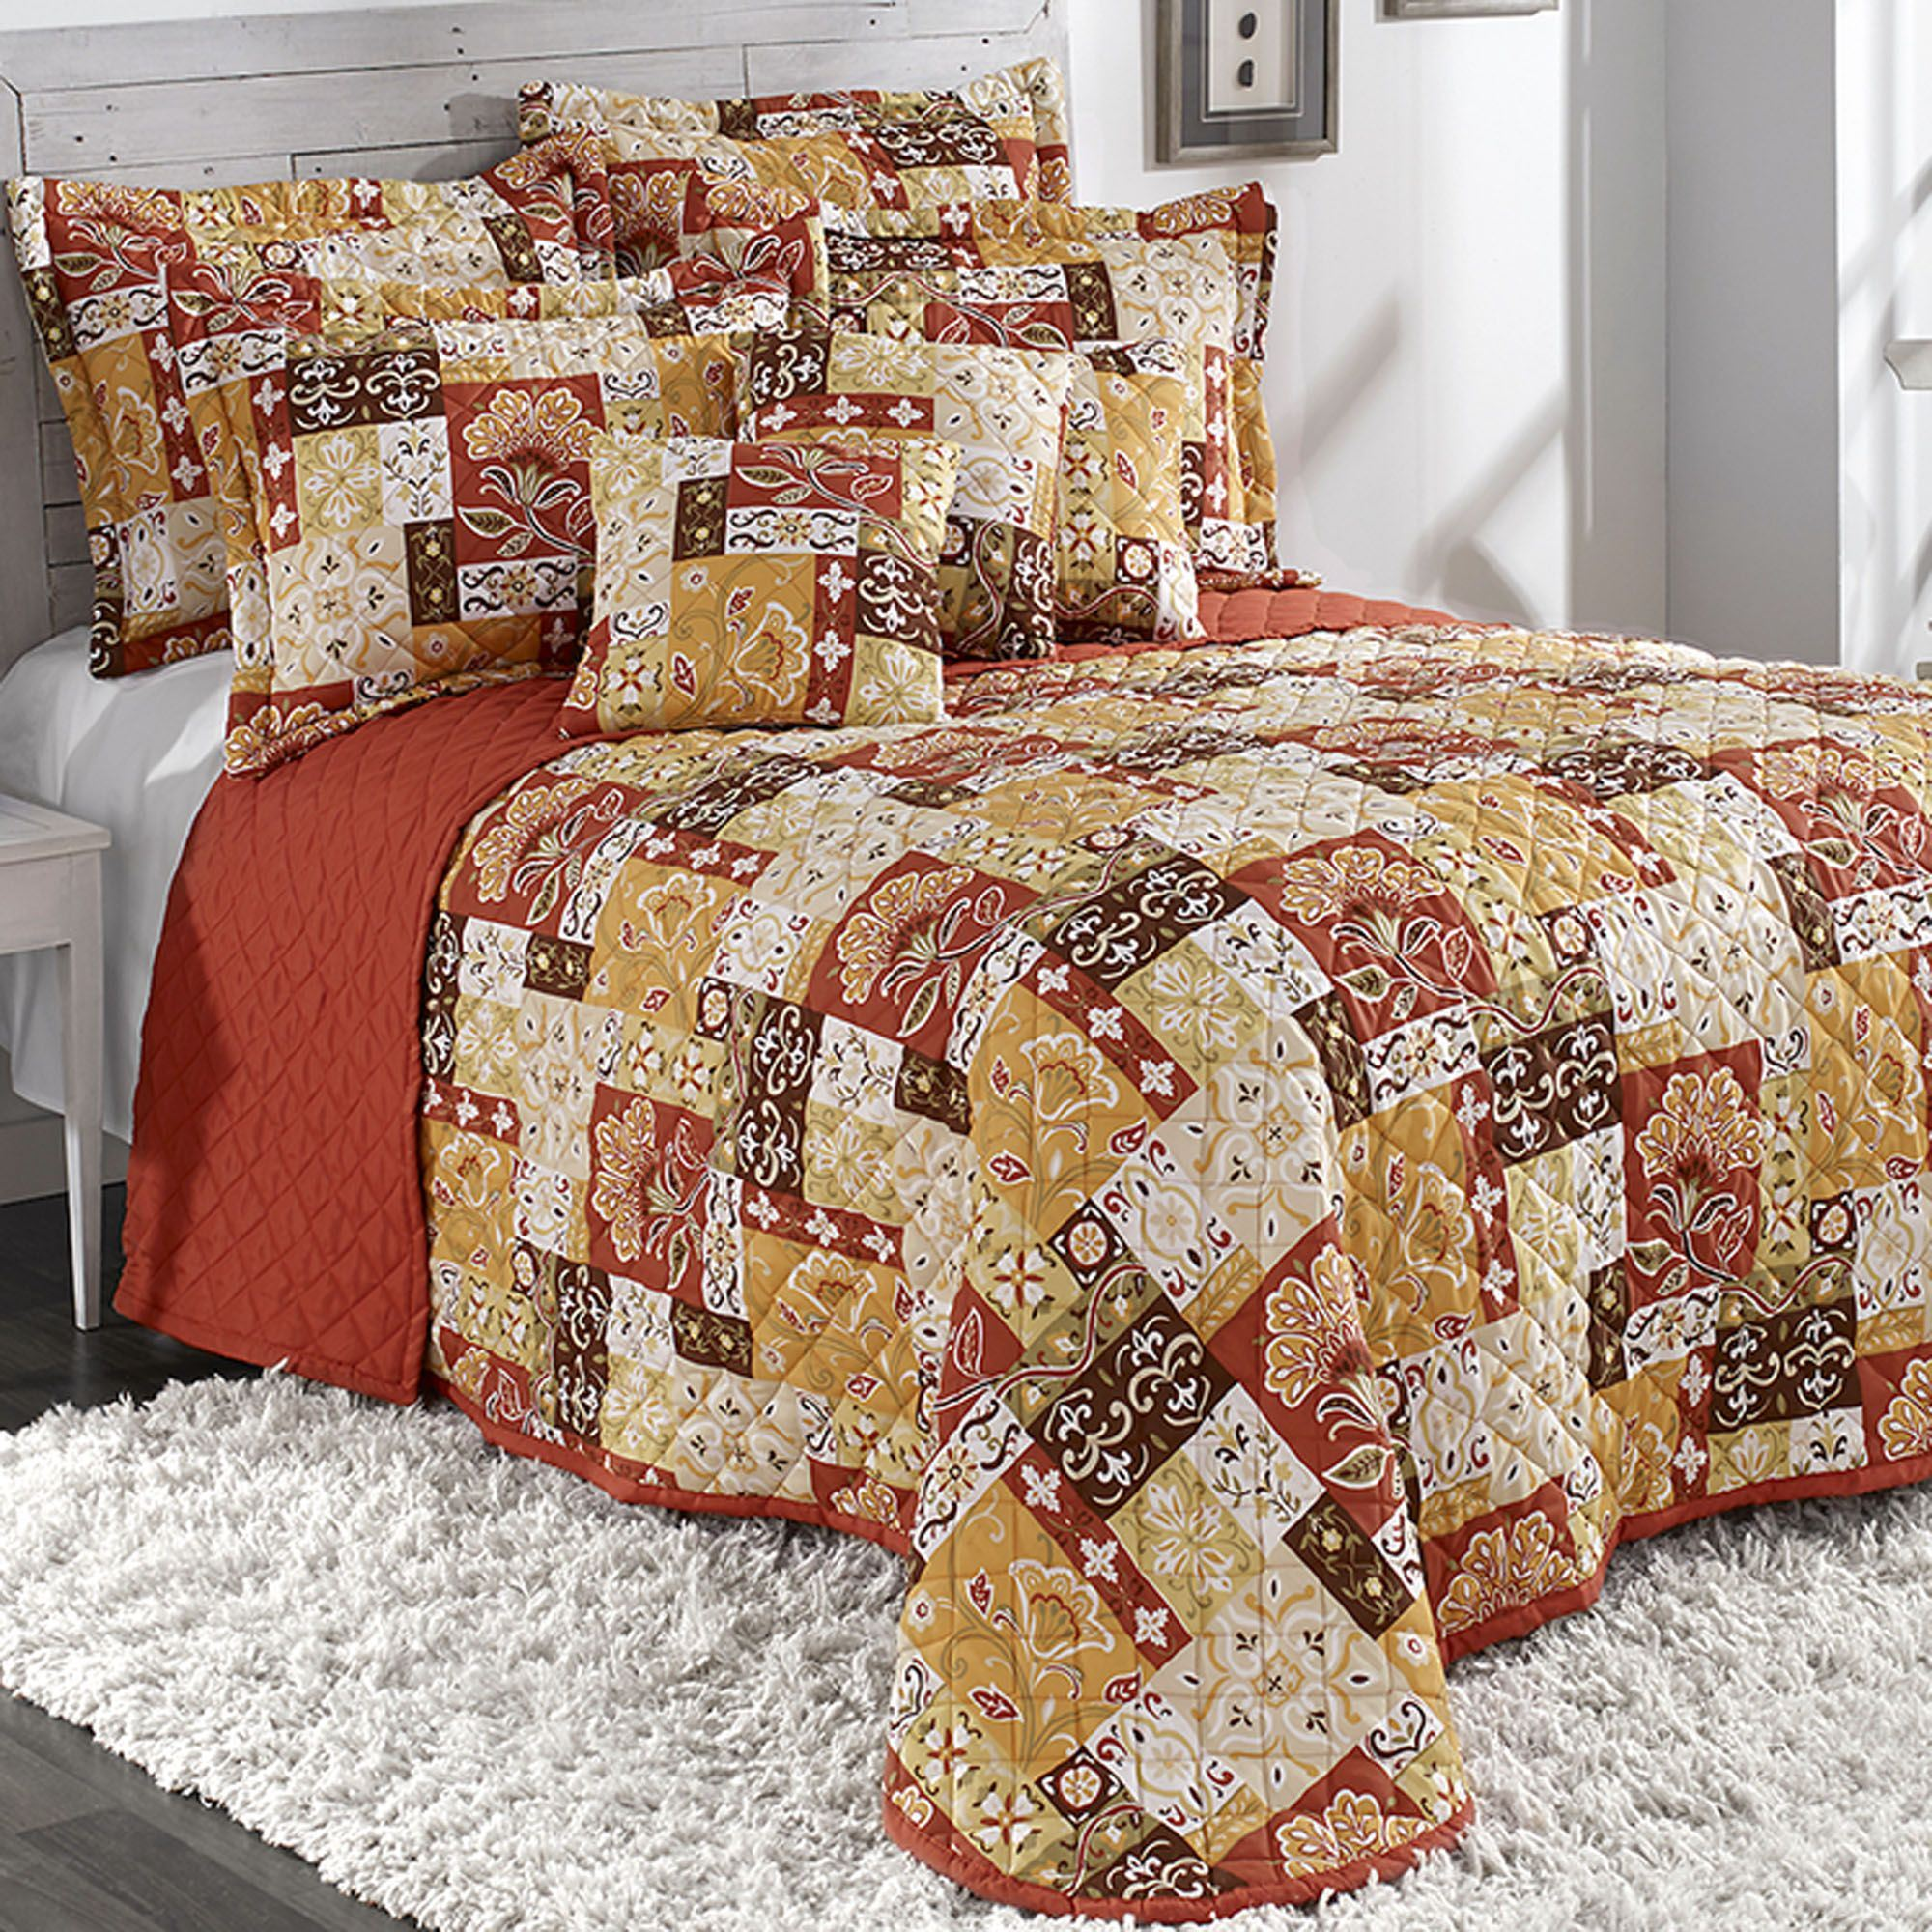 quilt quilted hawaiian bedspreads australia queen sets king bedspread bed free patterns